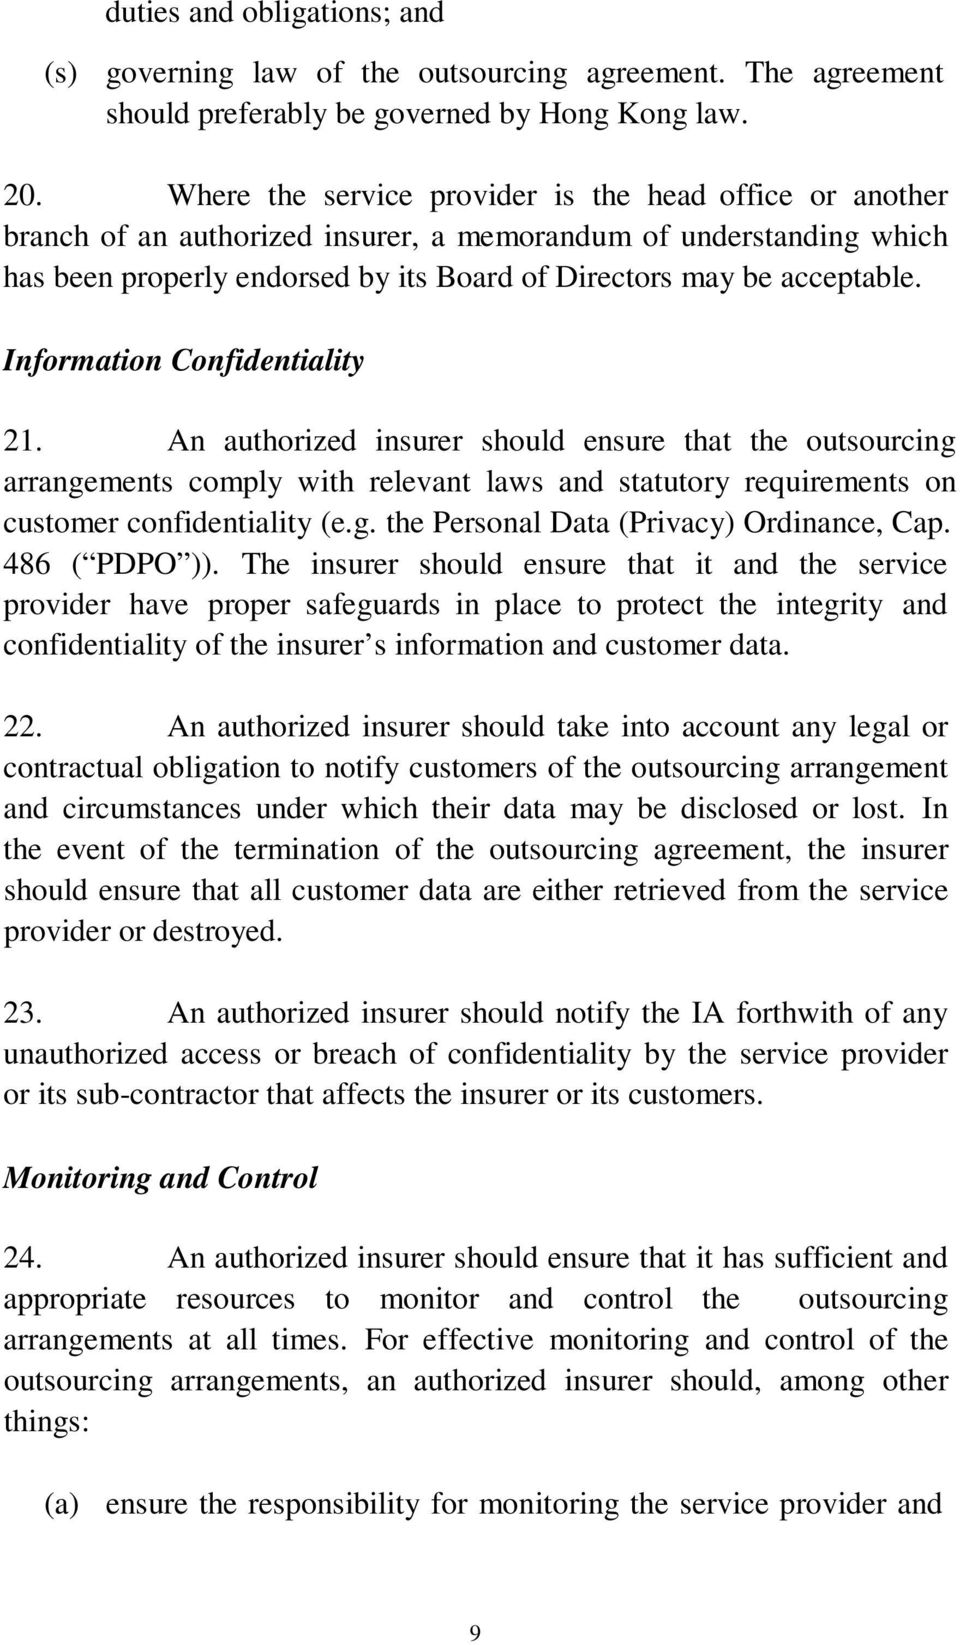 Information Confidentiality 21. An authorized insurer should ensure that the outsourcing arrangements comply with relevant laws and statutory requirements on customer confidentiality (e.g. the Personal Data (Privacy) Ordinance, Cap.